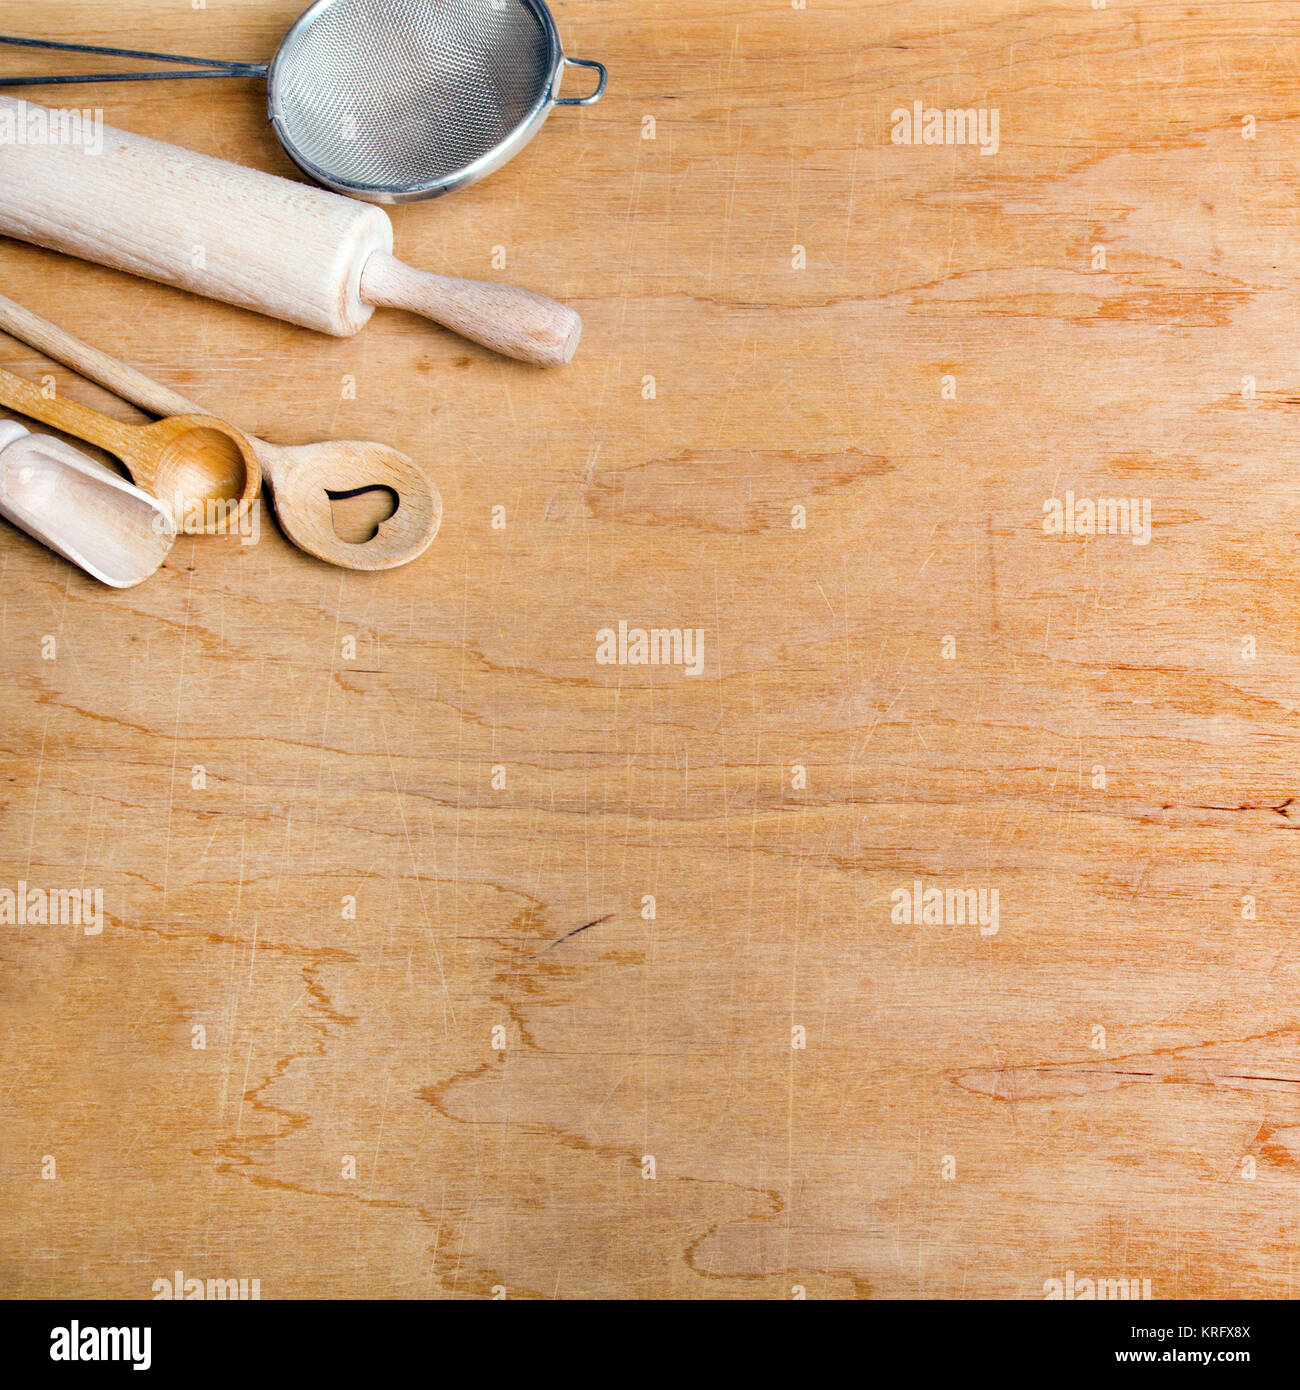 Kitchen Utensils Background: Antique Wooden Rolling Pin Stock Photos & Antique Wooden